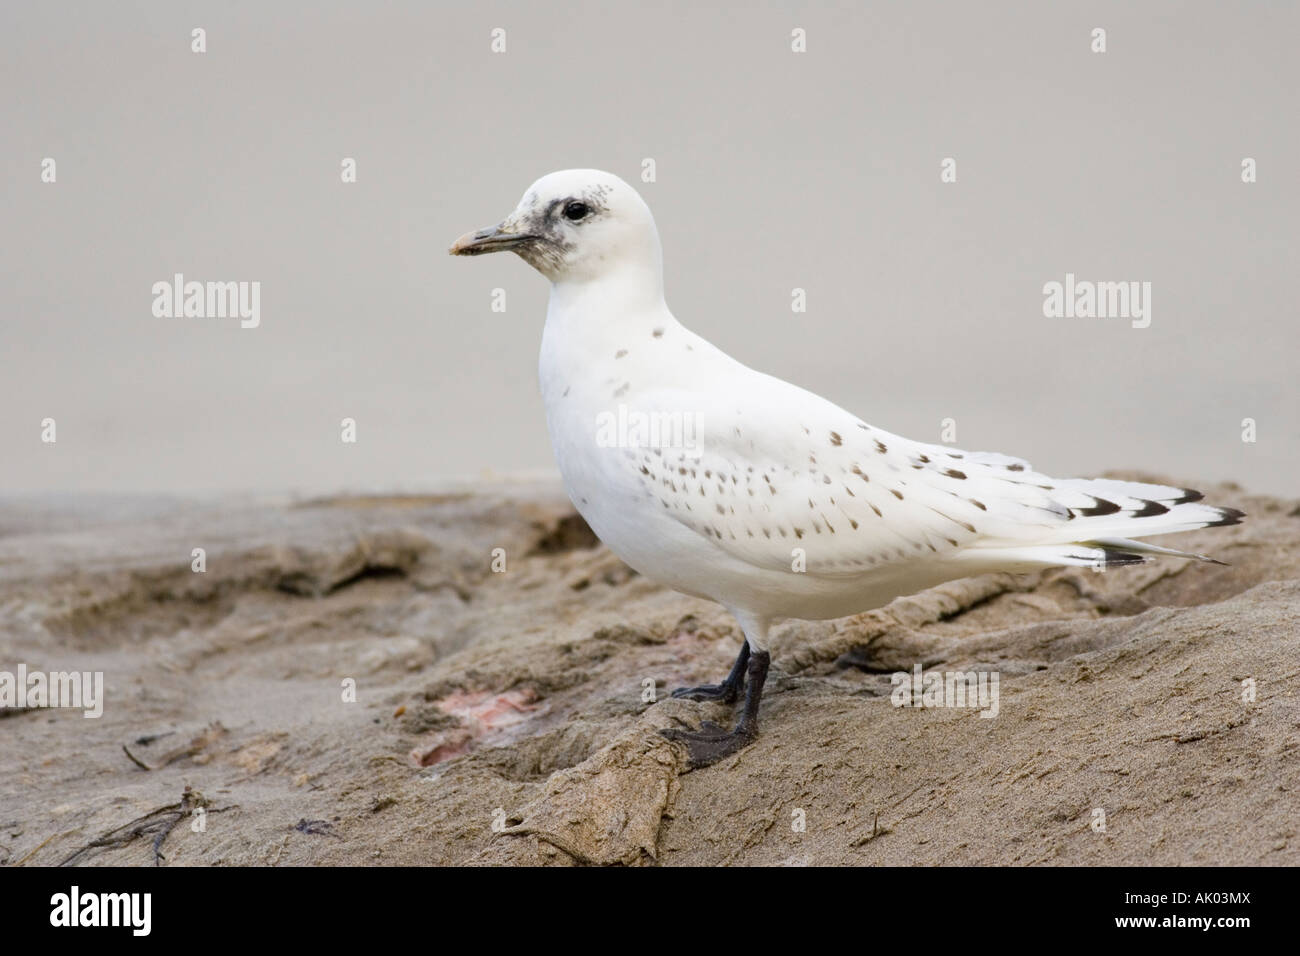 first-winter Ivory Gull on Minke Whale carcass - Stock Image